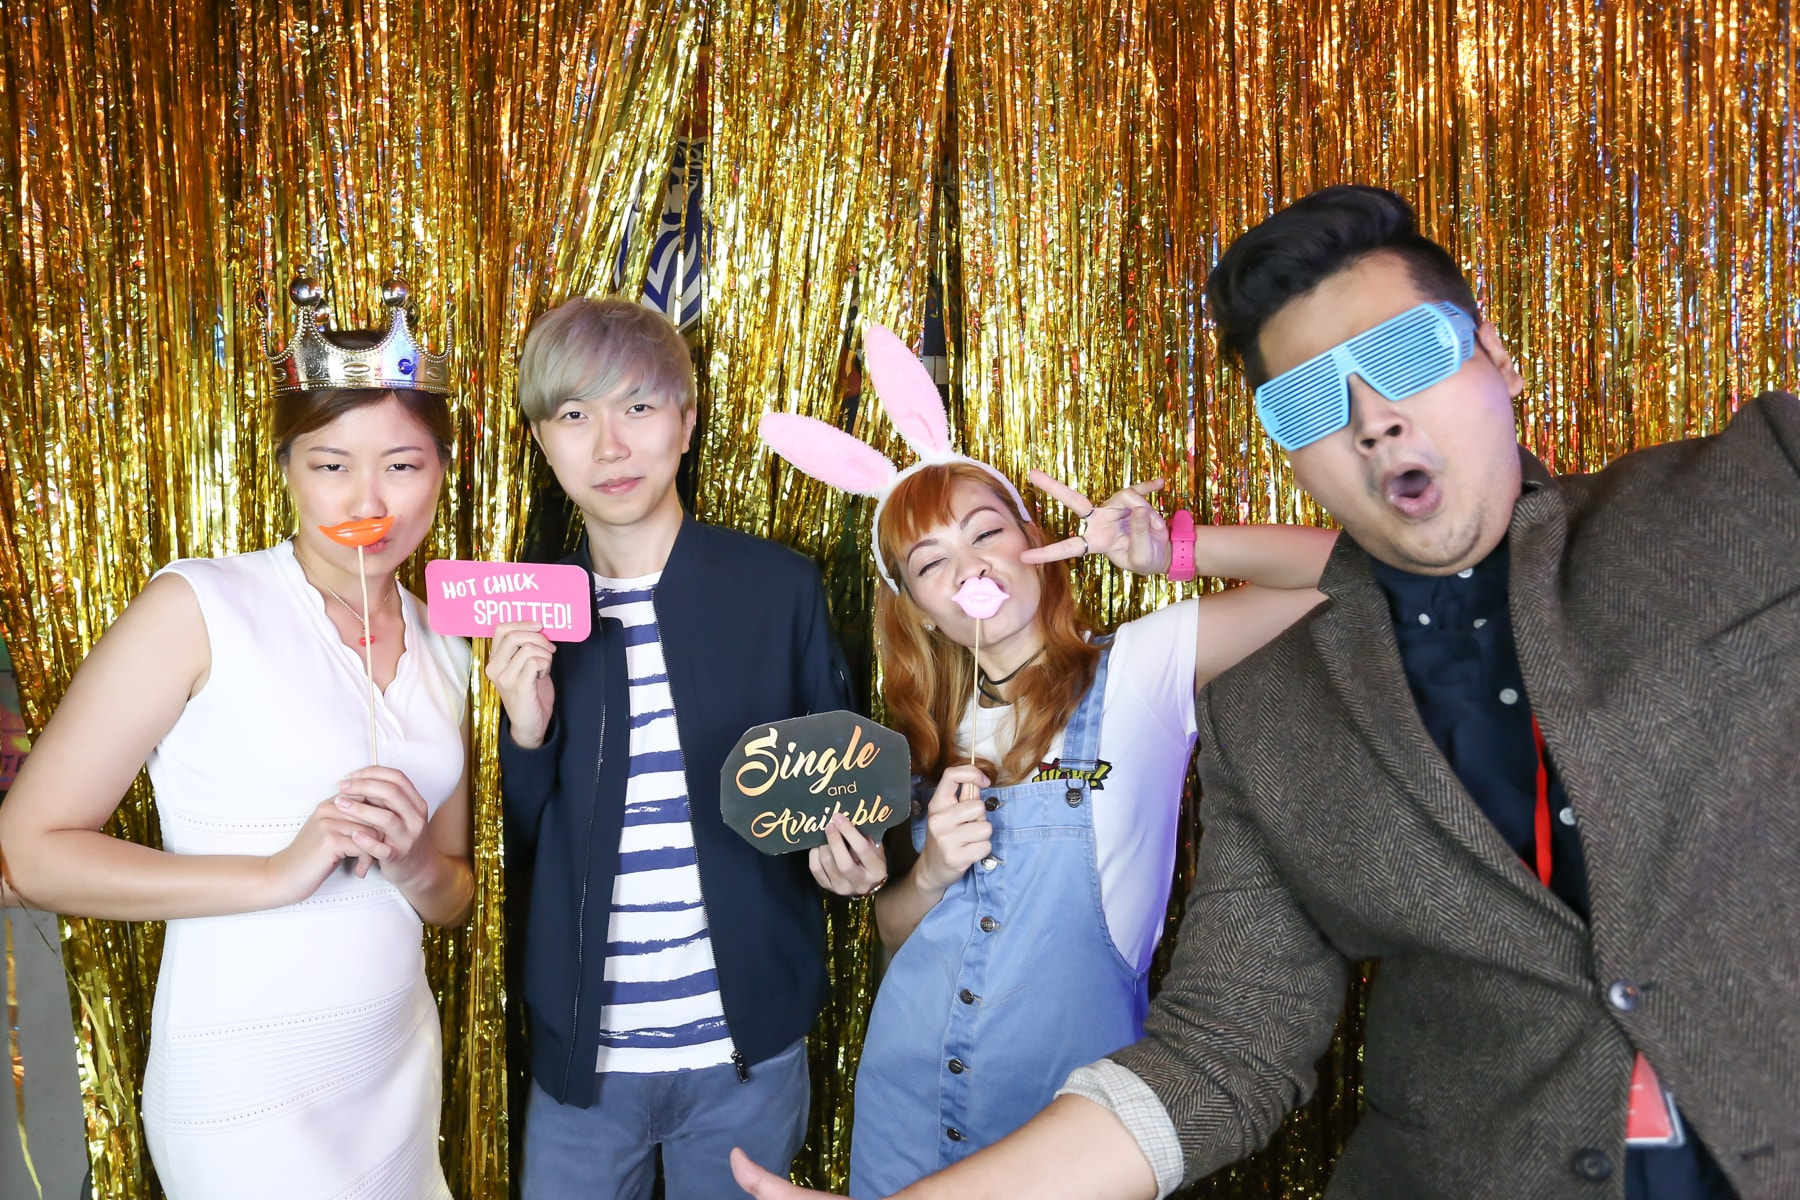 Sushivid+crunch+tagbooth+14